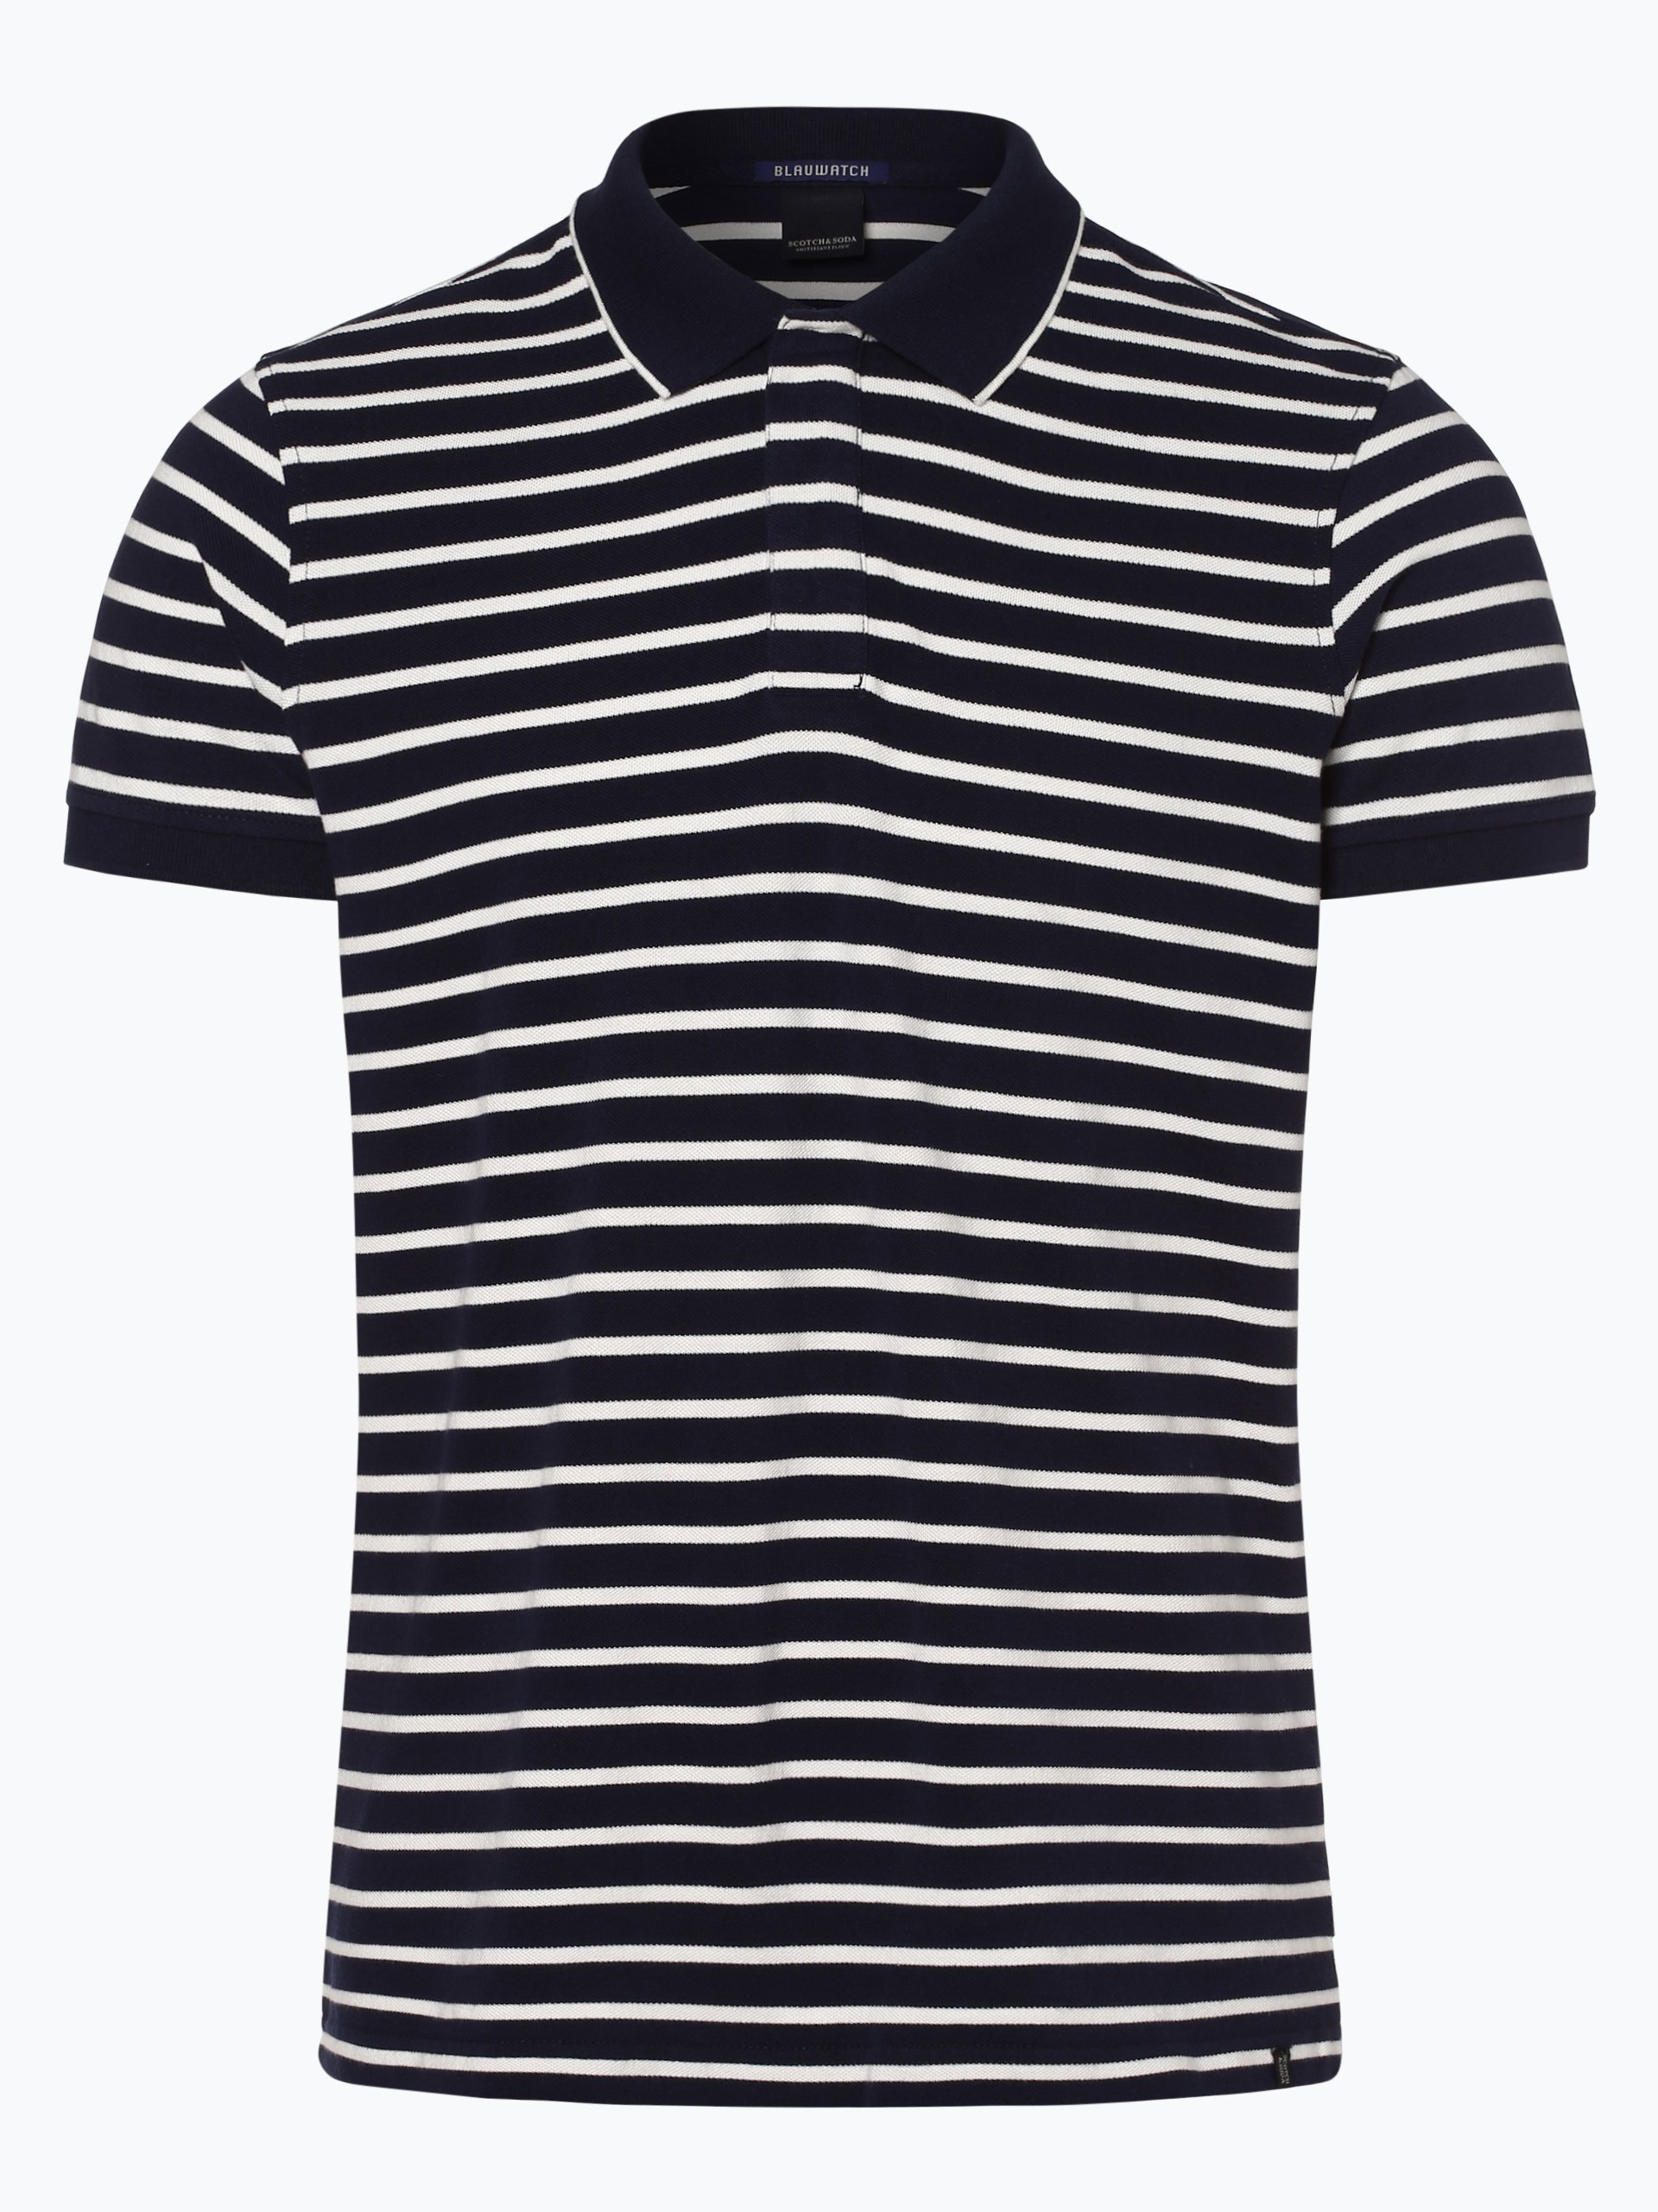 Scotch & Soda Herren Poloshirt